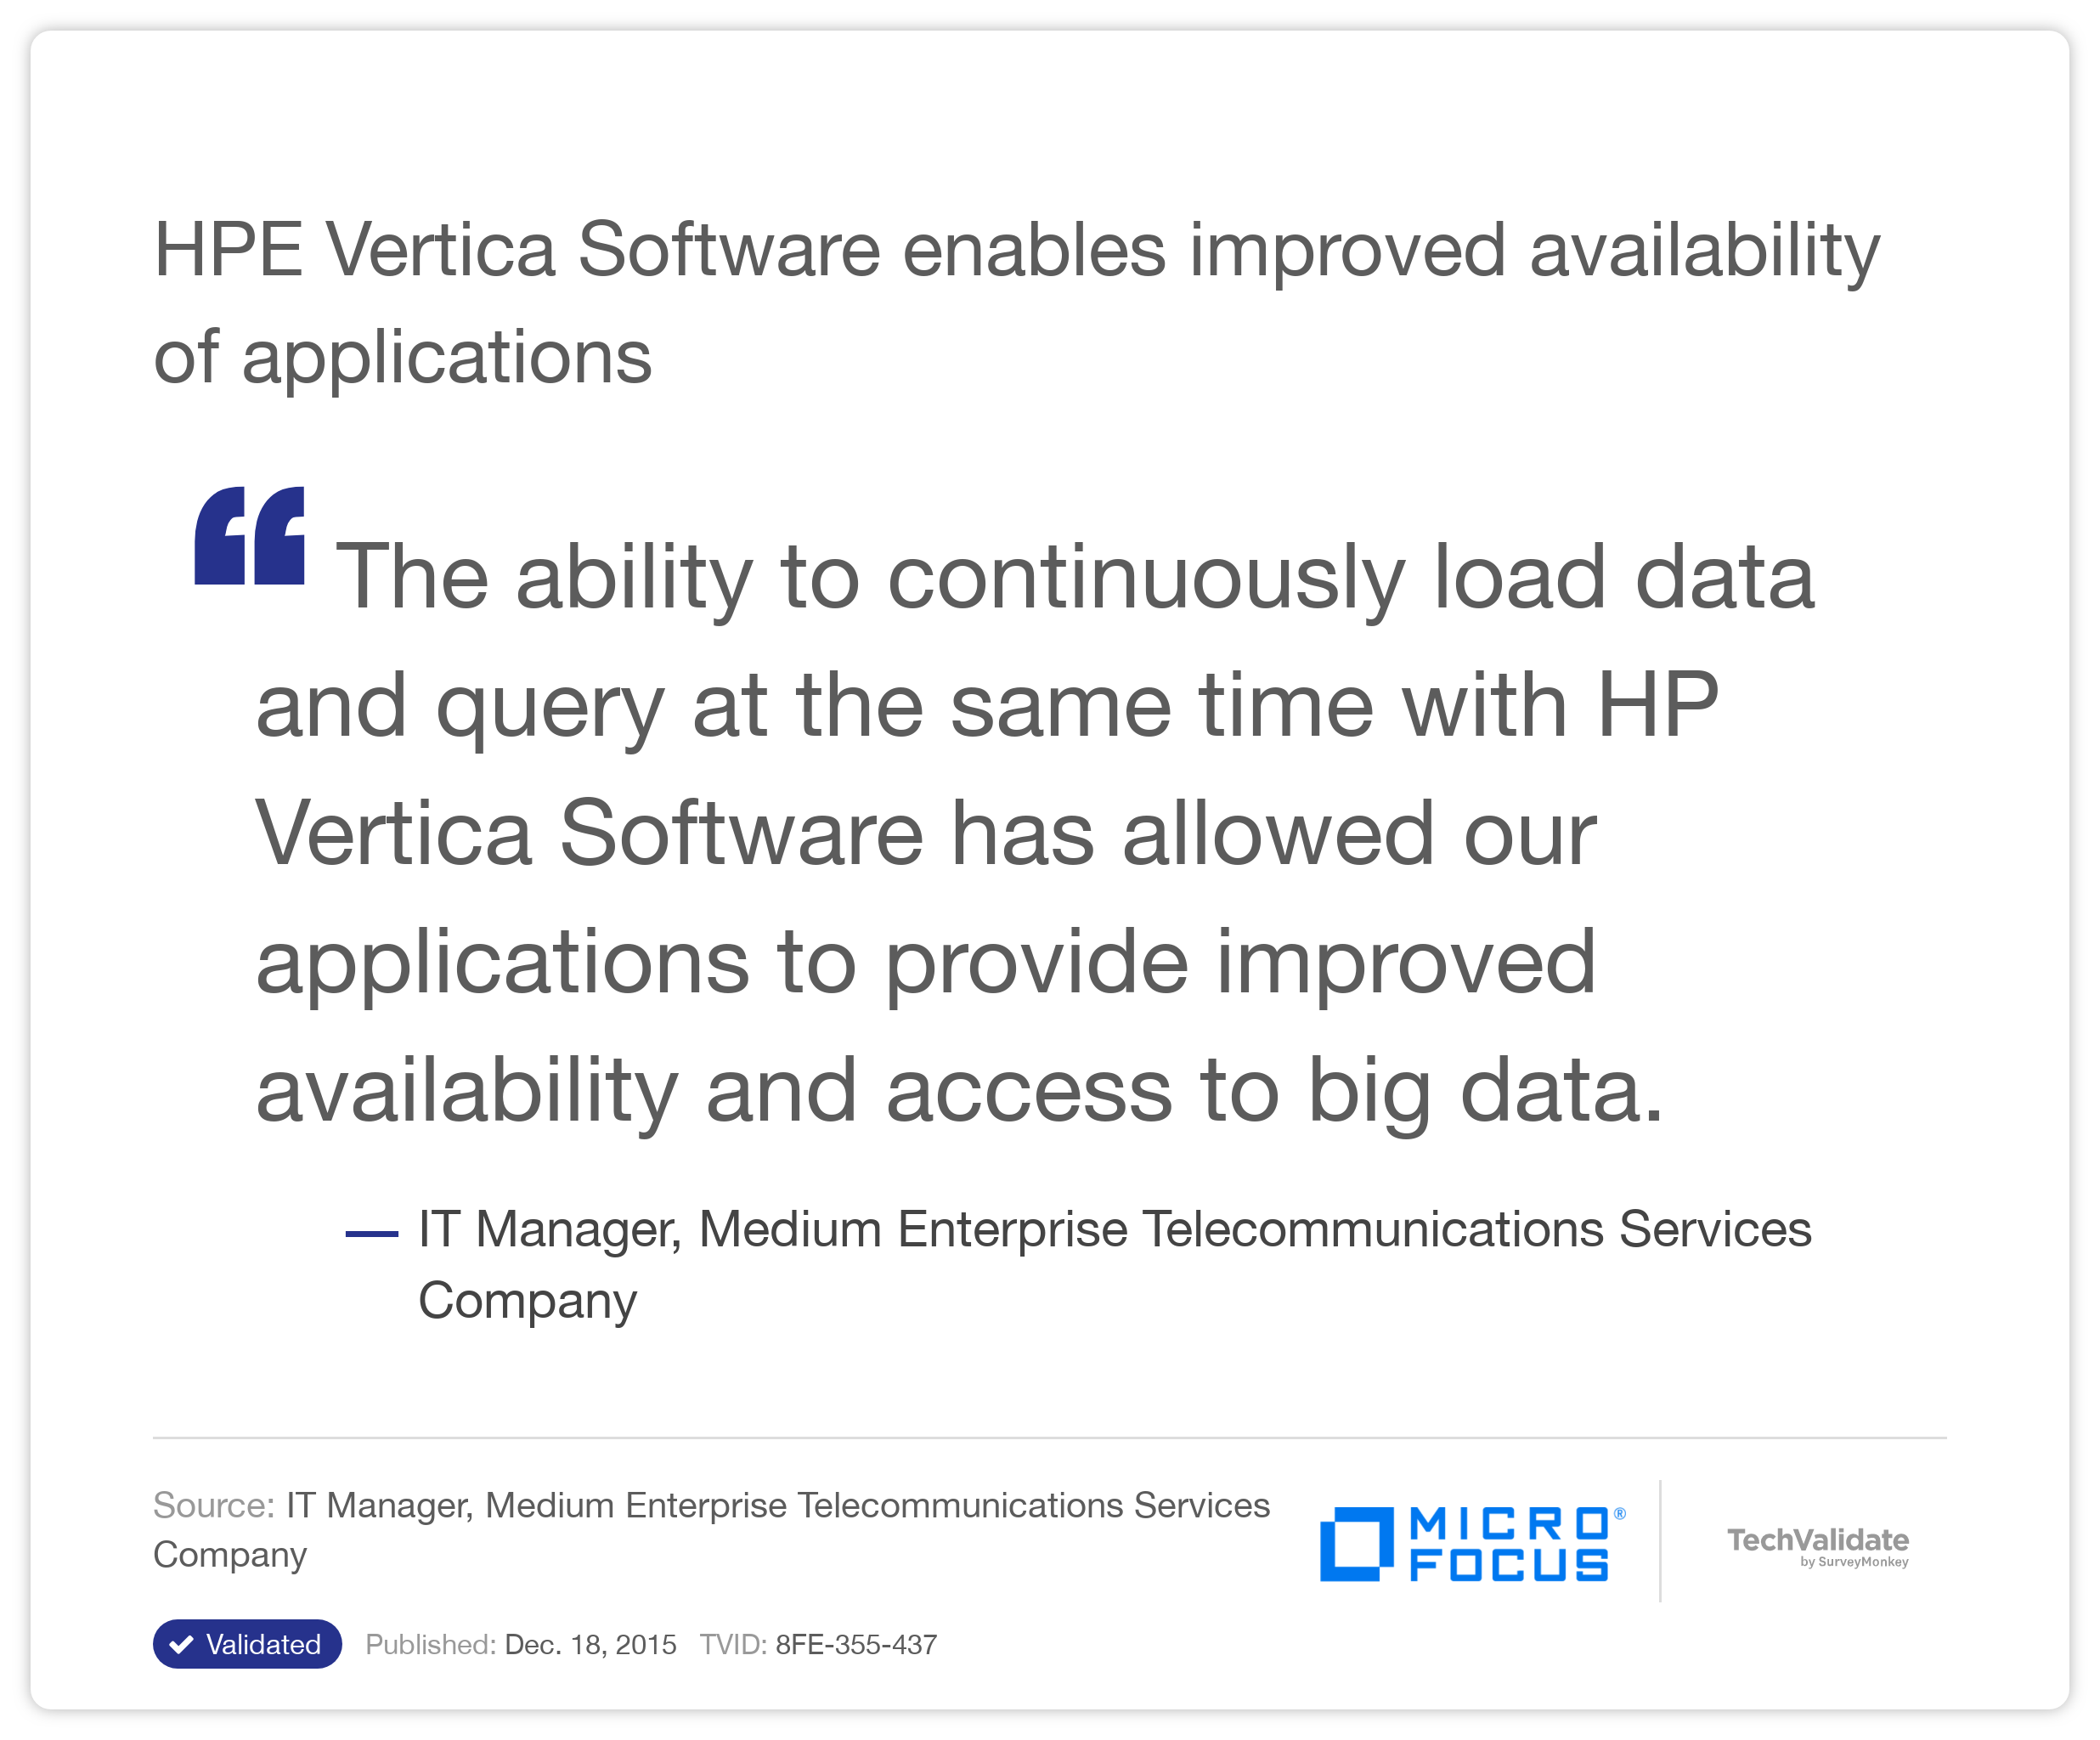 HP Vertica Software enables improved availability of applications